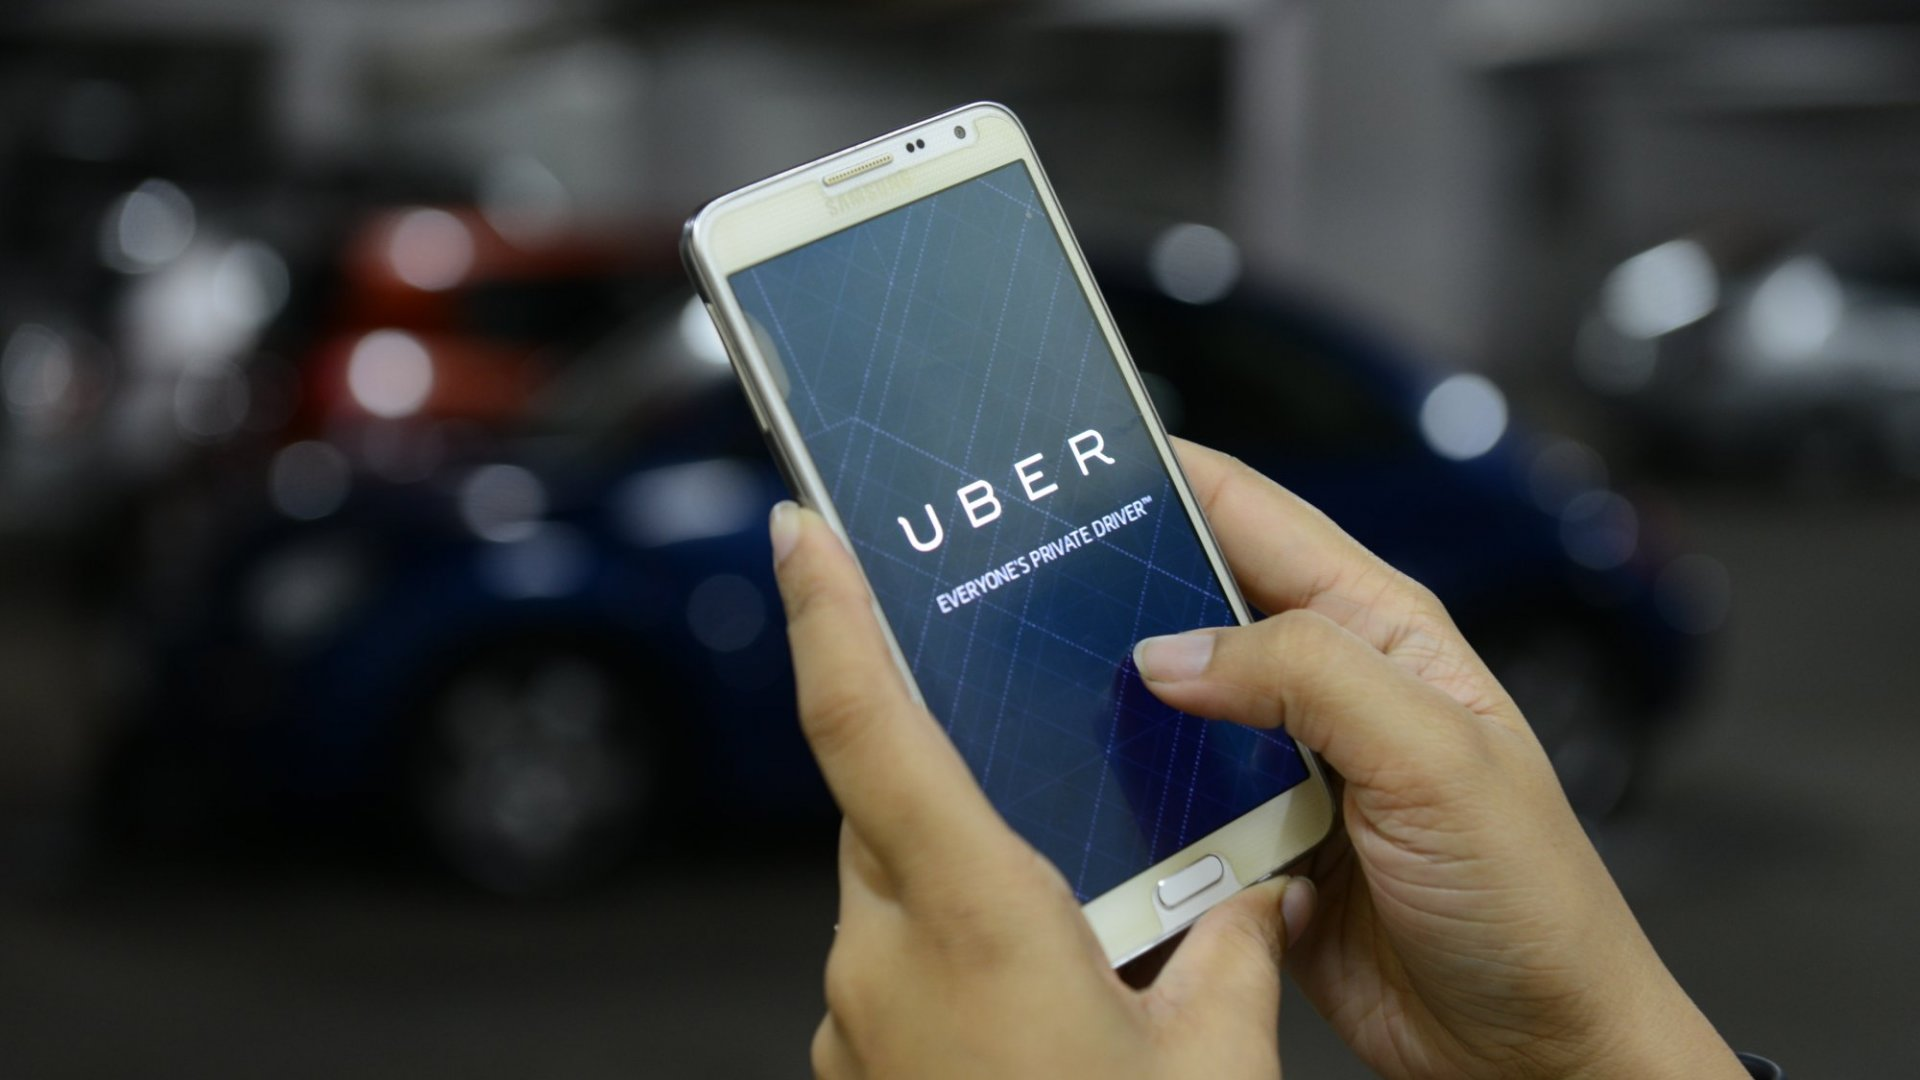 Uber, Lyft, DoorDash Are Betting That Bigger Bonuses and Better Perks Will Entice Workers. But Will It Keep Them Happy?